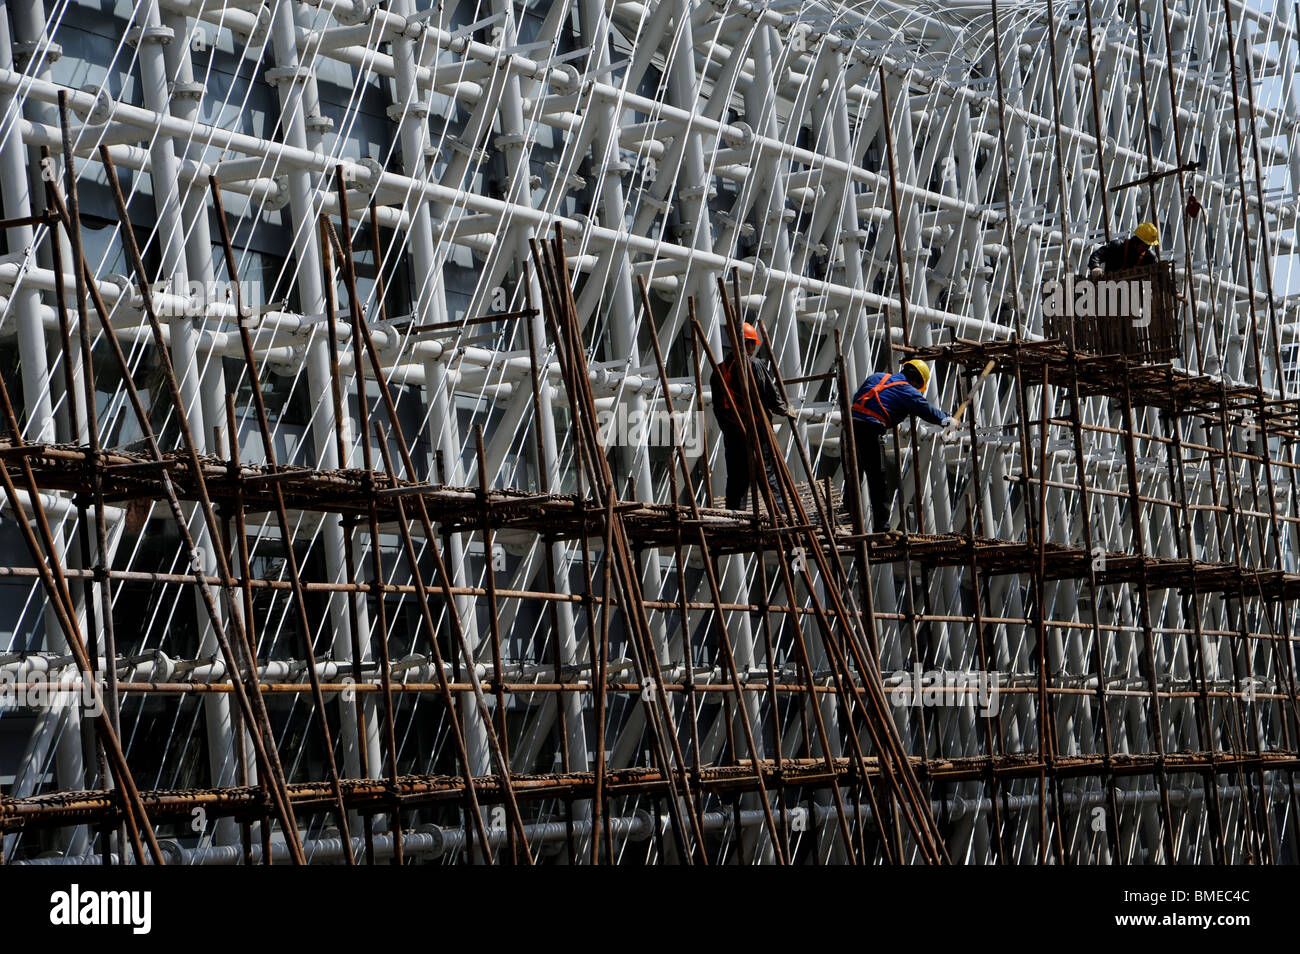 Worker working on scaffold, 2010 Shanghai World Expo Park, Pudong, Shanghai, China - Stock Image